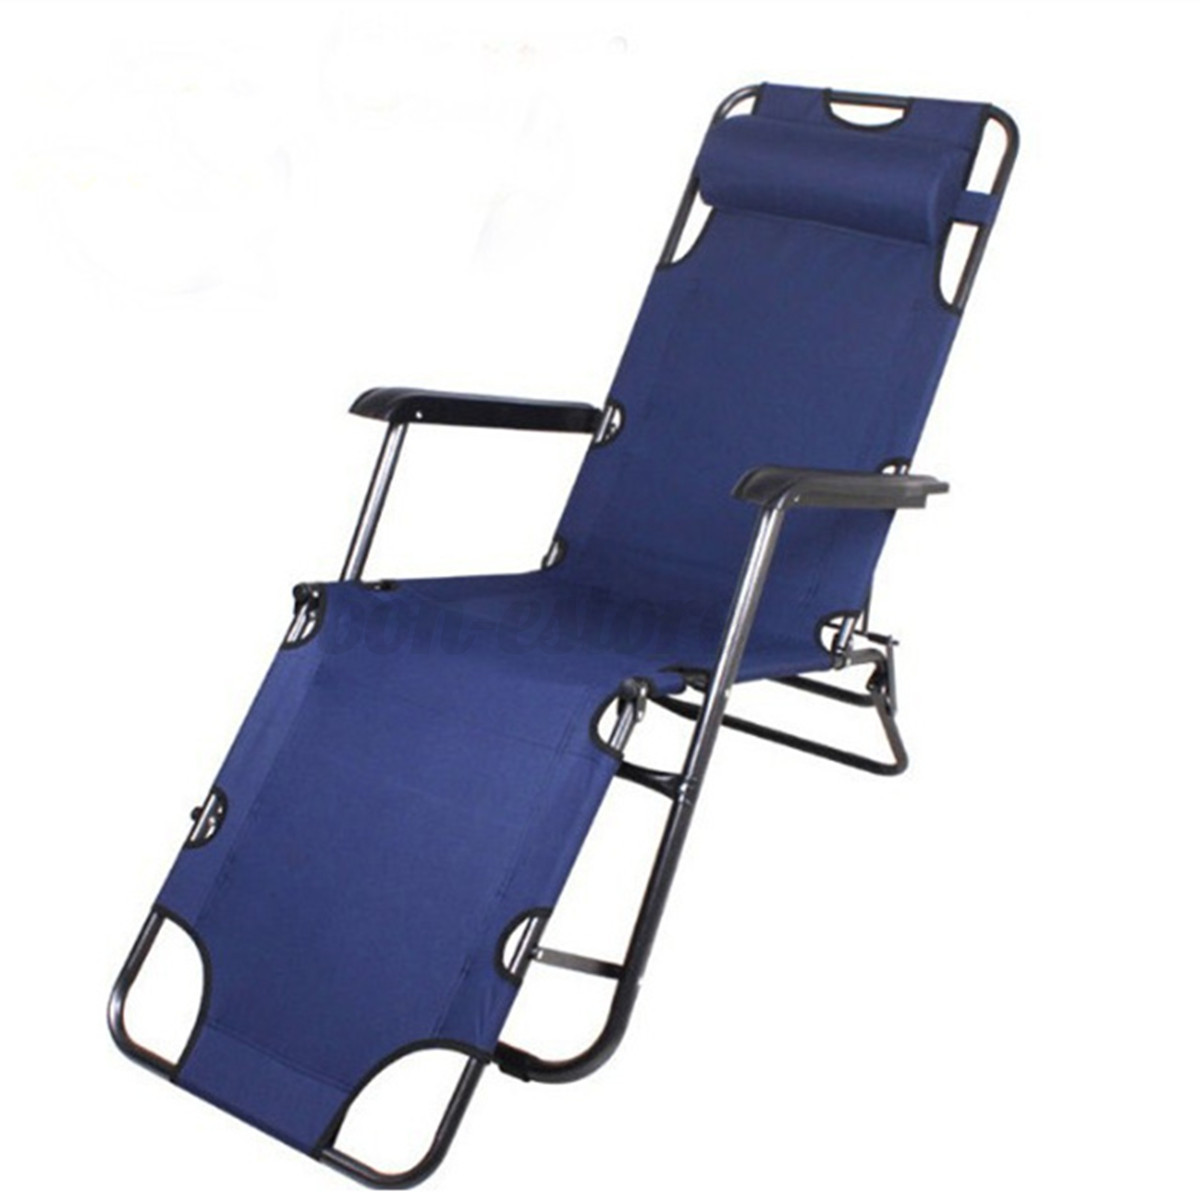 Outdoor folding reclining beach sun patio chaise lounge for Reclining patio chair